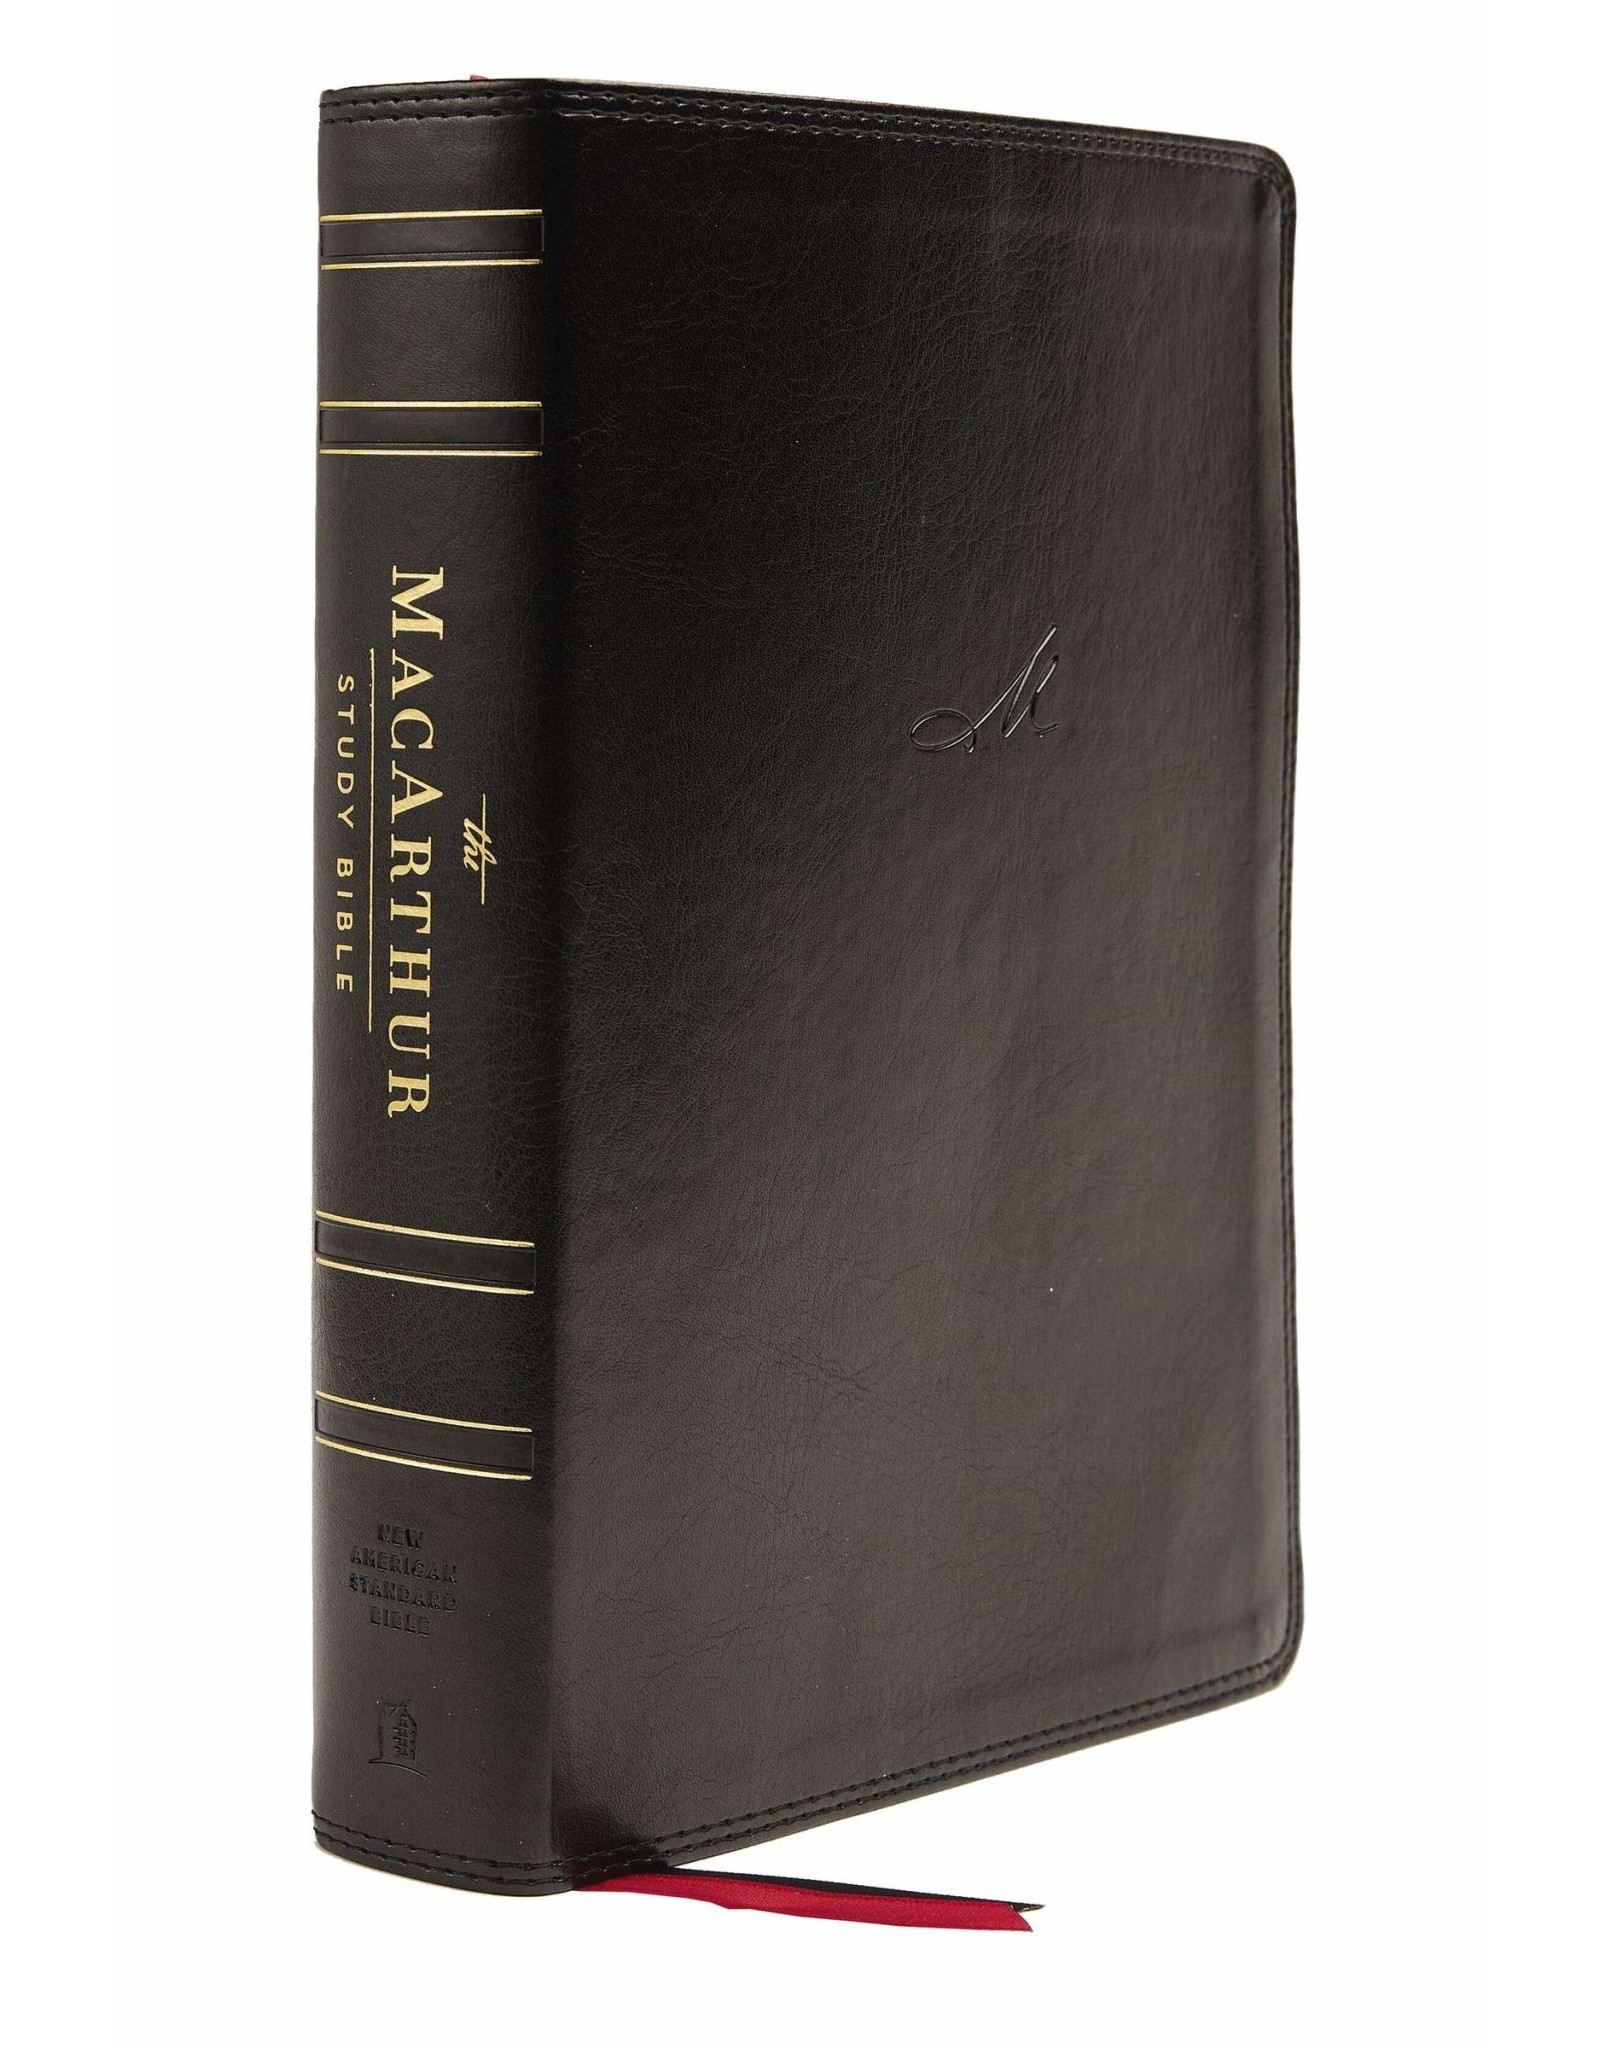 Harper Collins / Thomas Nelson / Zondervan NASB MSB MacArthur Study Bible (2nd Edition, Leathersoft, Black, Thumb Indexed, Comfort Print)